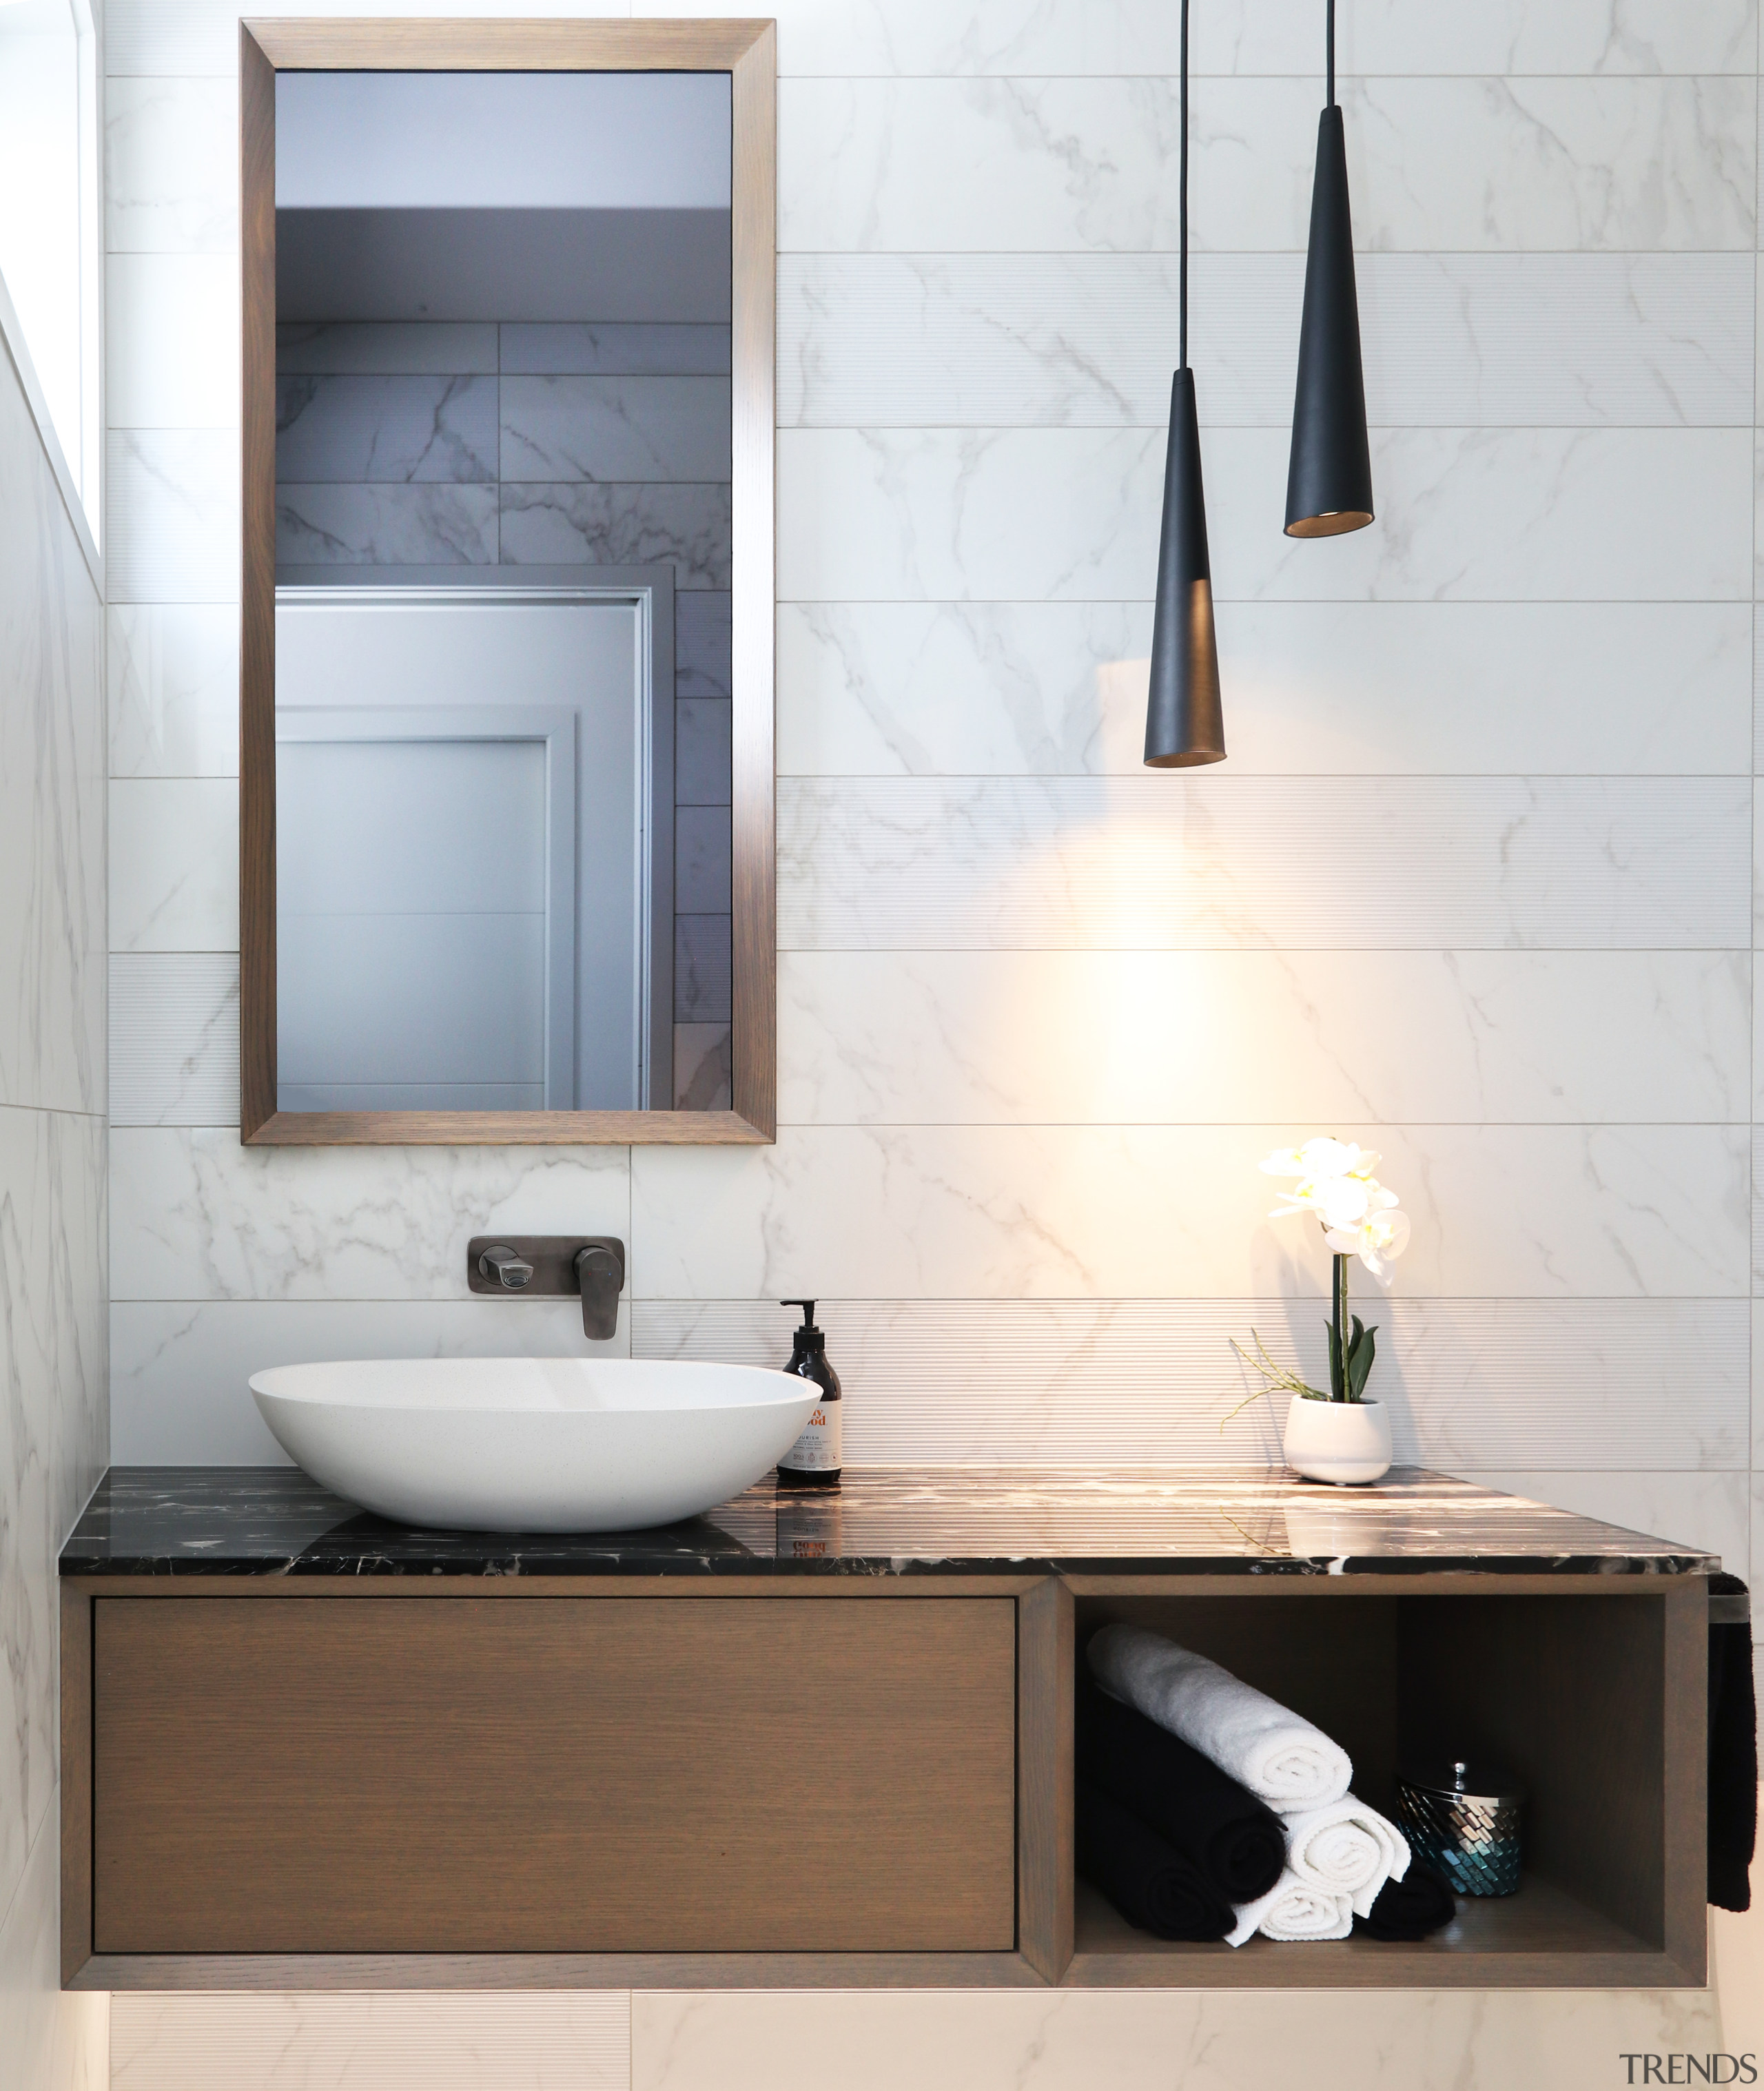 Elite supplied many stand-out products for this home bathroom, bathroom accessory, bathroom cabinet, ceramic, floor, flooring, furniture, interior design, marble, material property, plumbing fixture, property, room, sink, tap, tile, wall, white